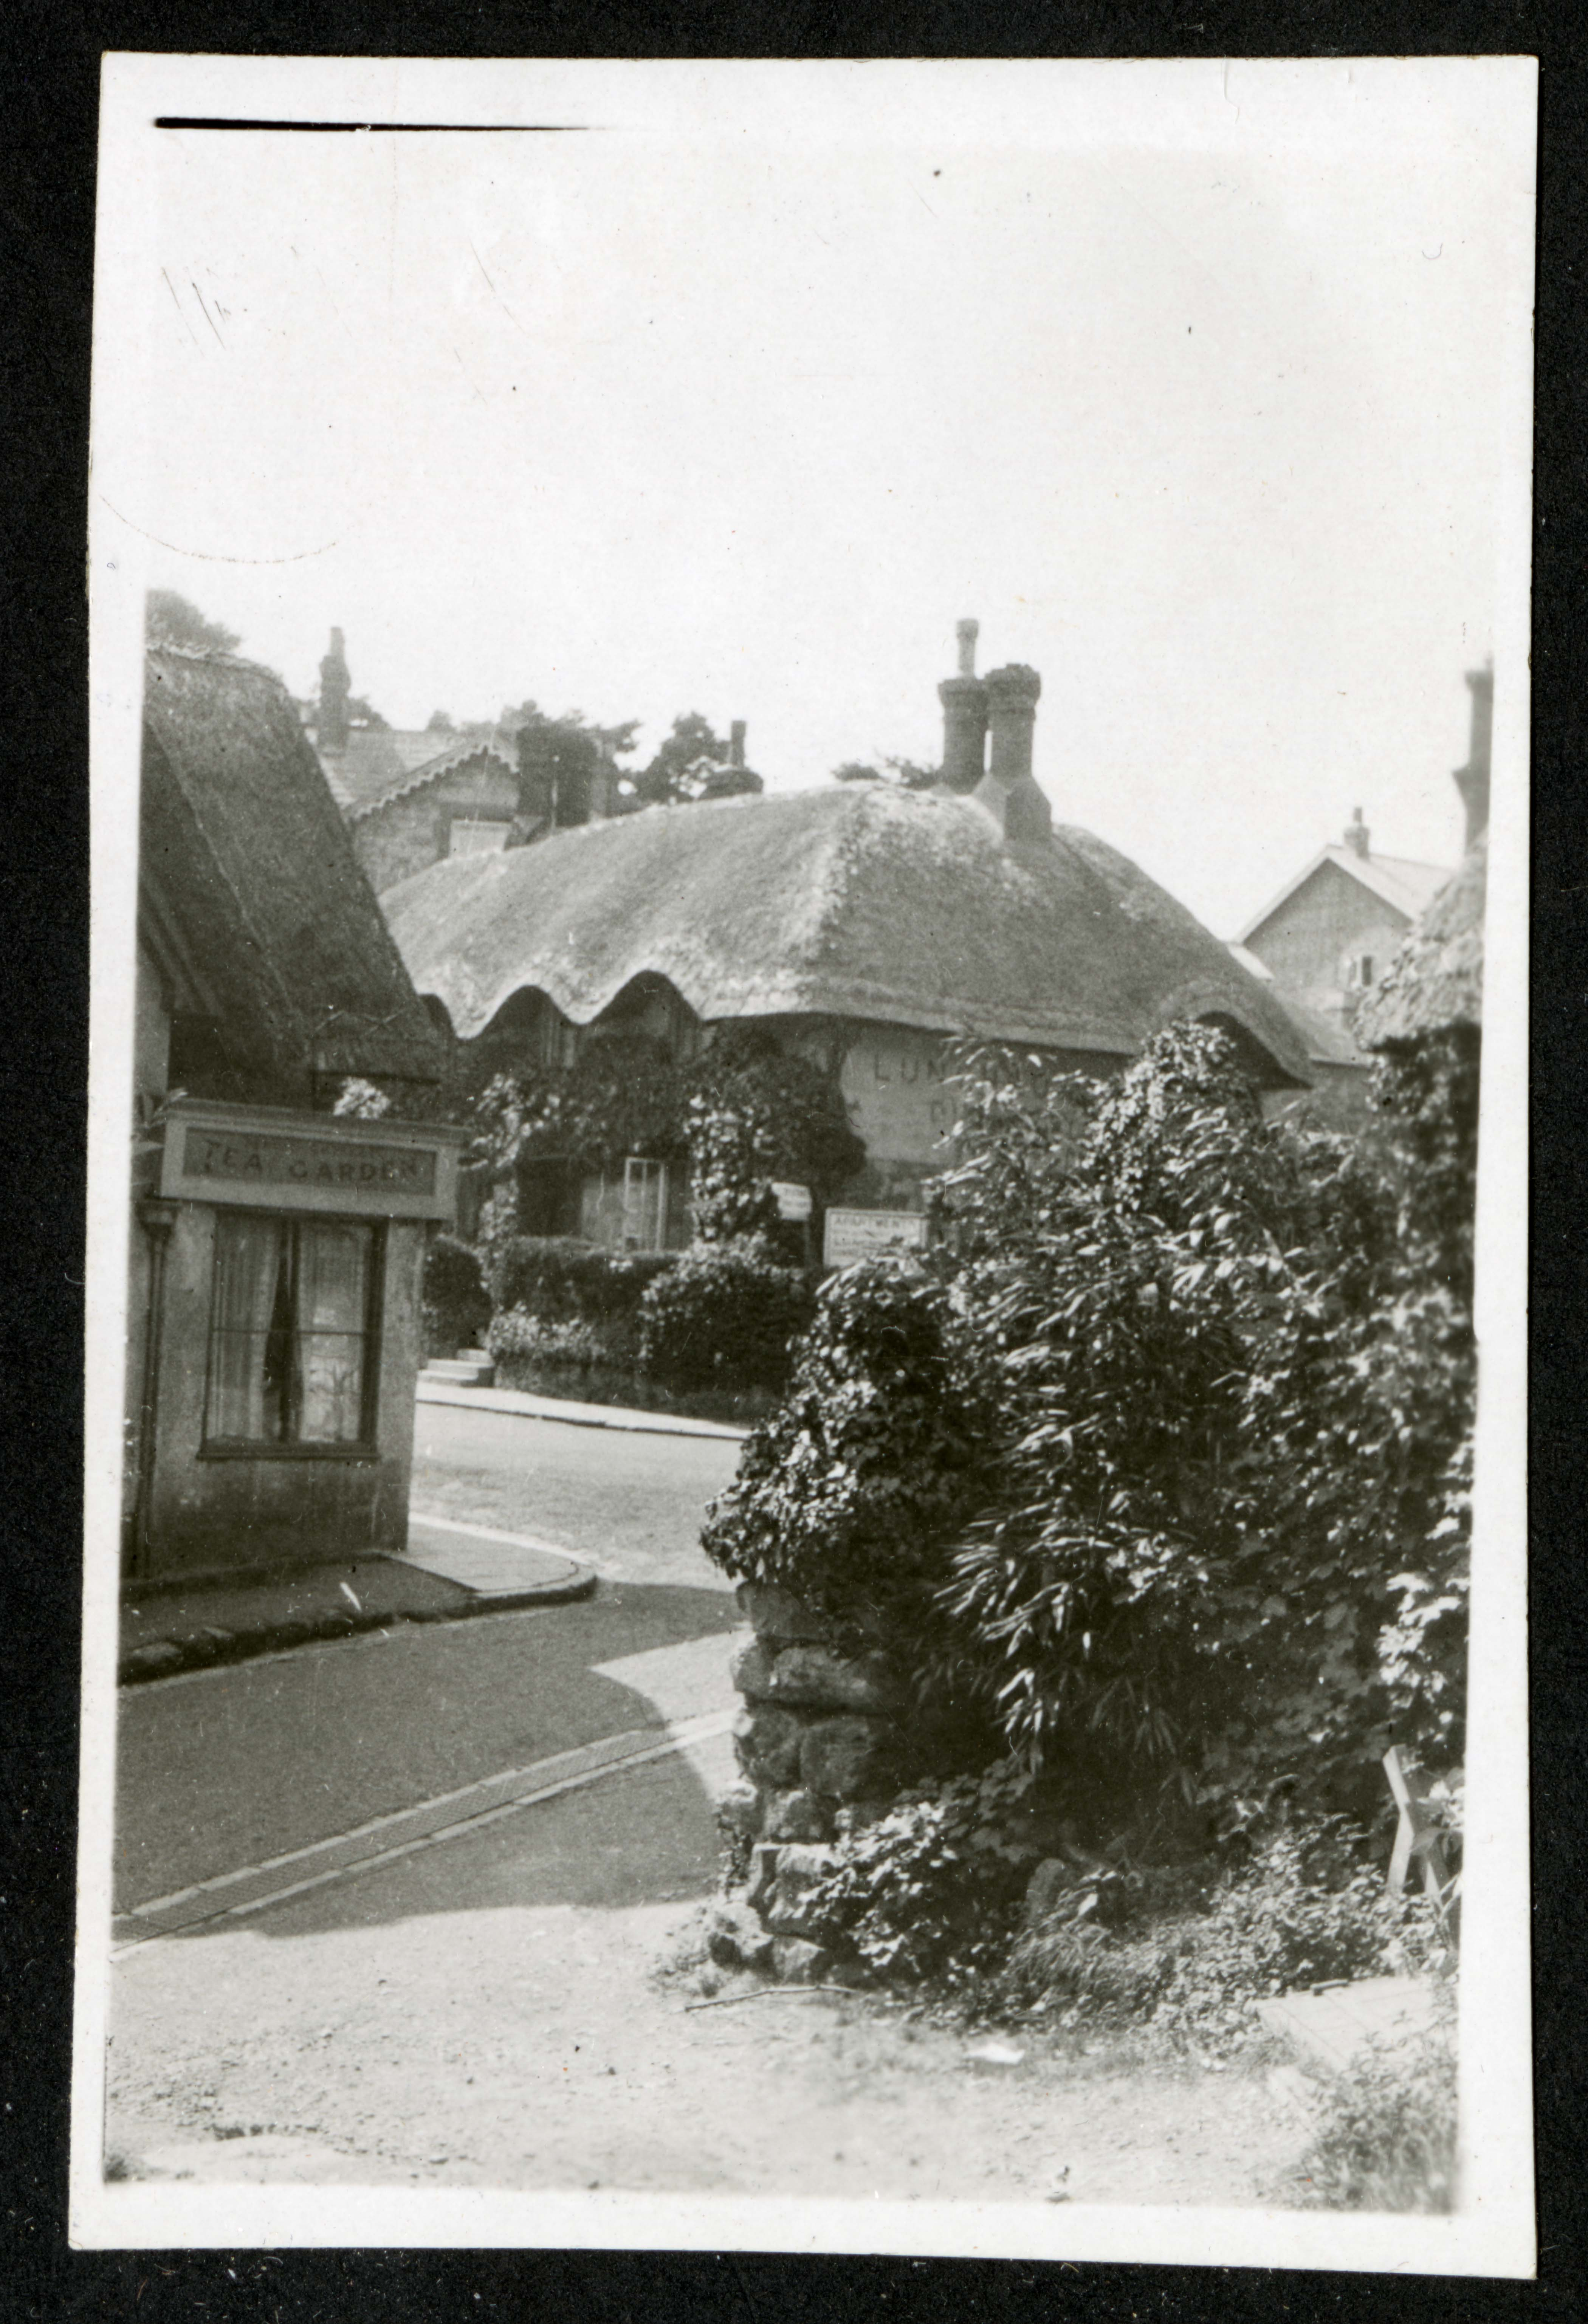 Thatched cottage, Record Unit 7091: Science Service, Records, circa 1910-1963, Smithsonian Institution Archives, image no. SIA2015-003200.